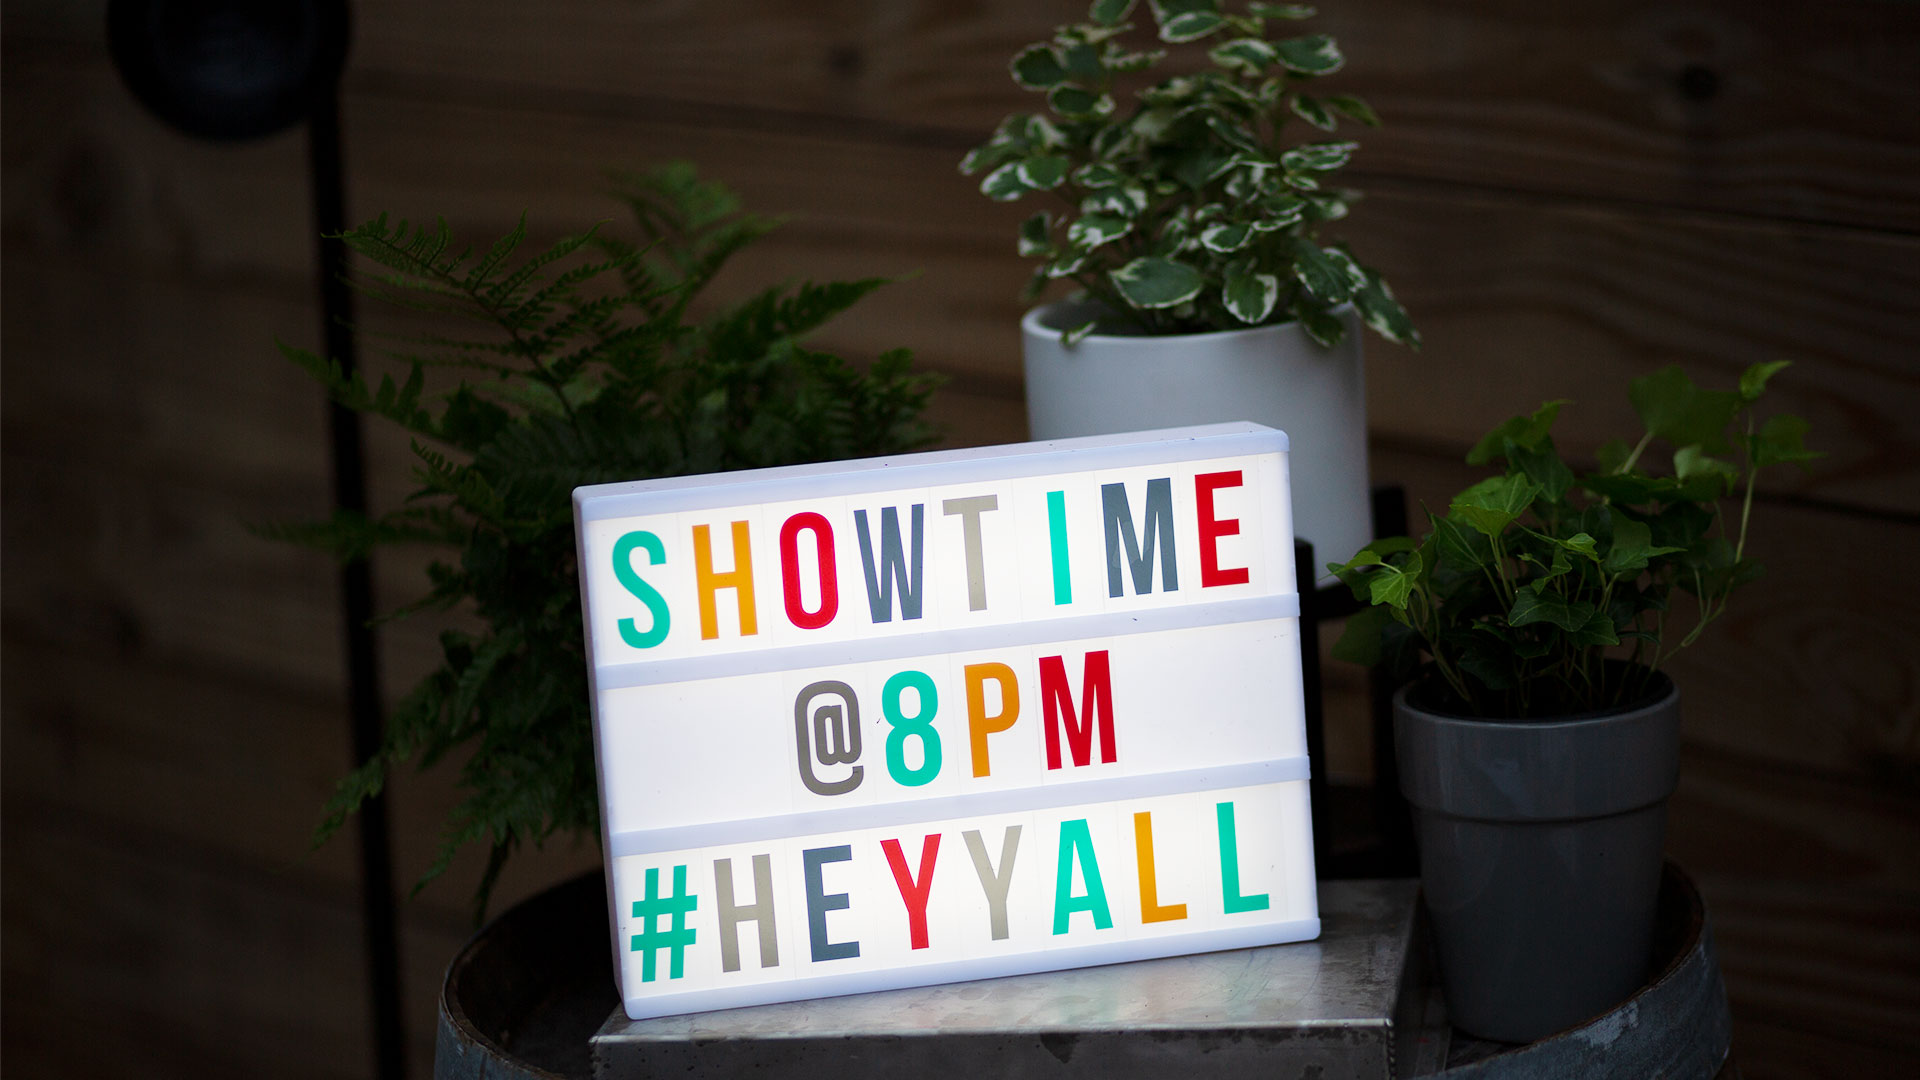 Showtime Sign